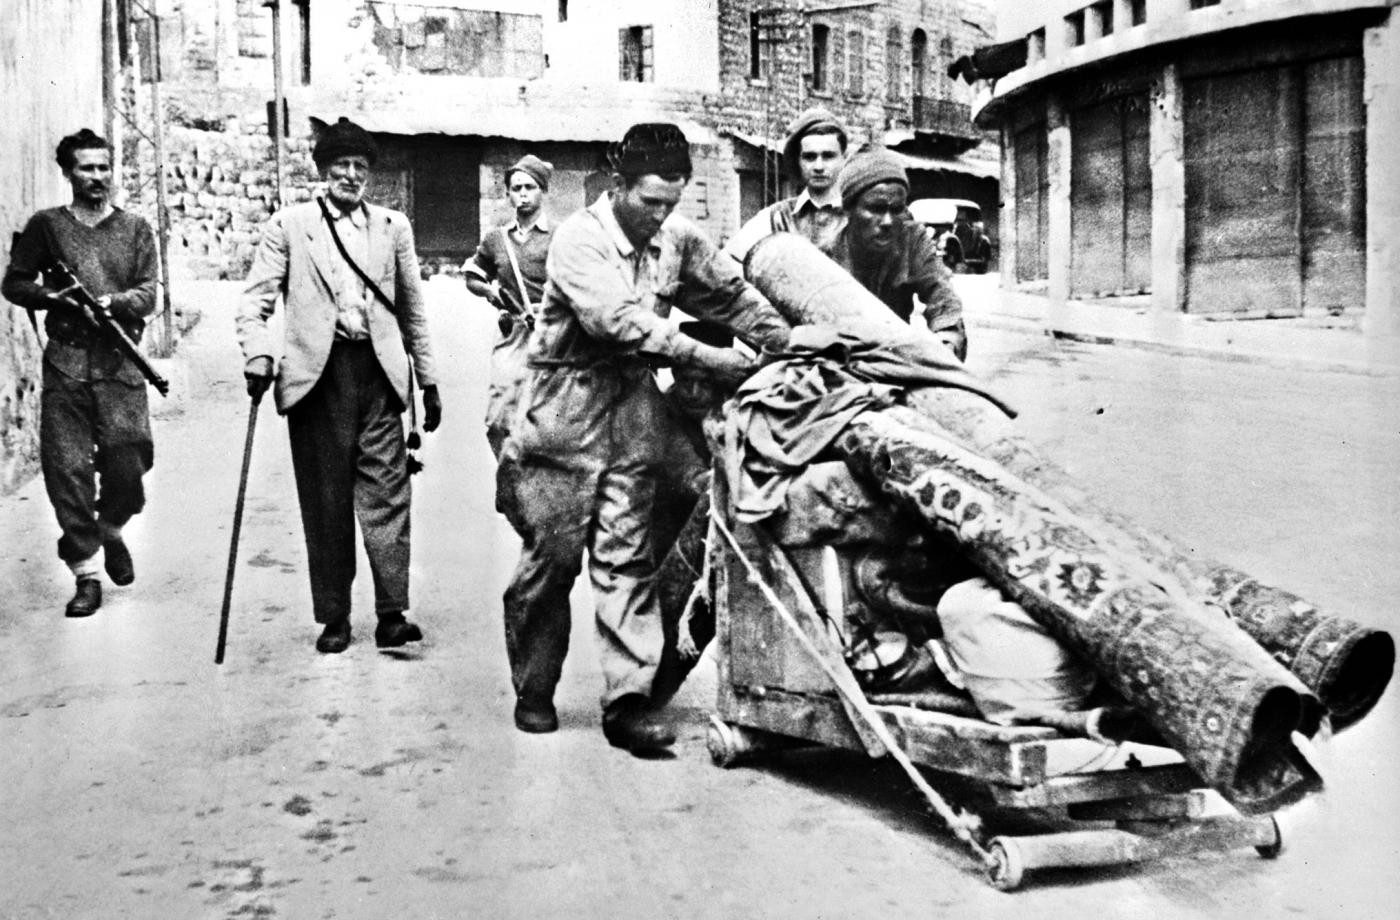 Members of the Haganah paramilitary group escort Palestinians expelled from Haifa after Jewish forces took control in April 1948 (AFP)